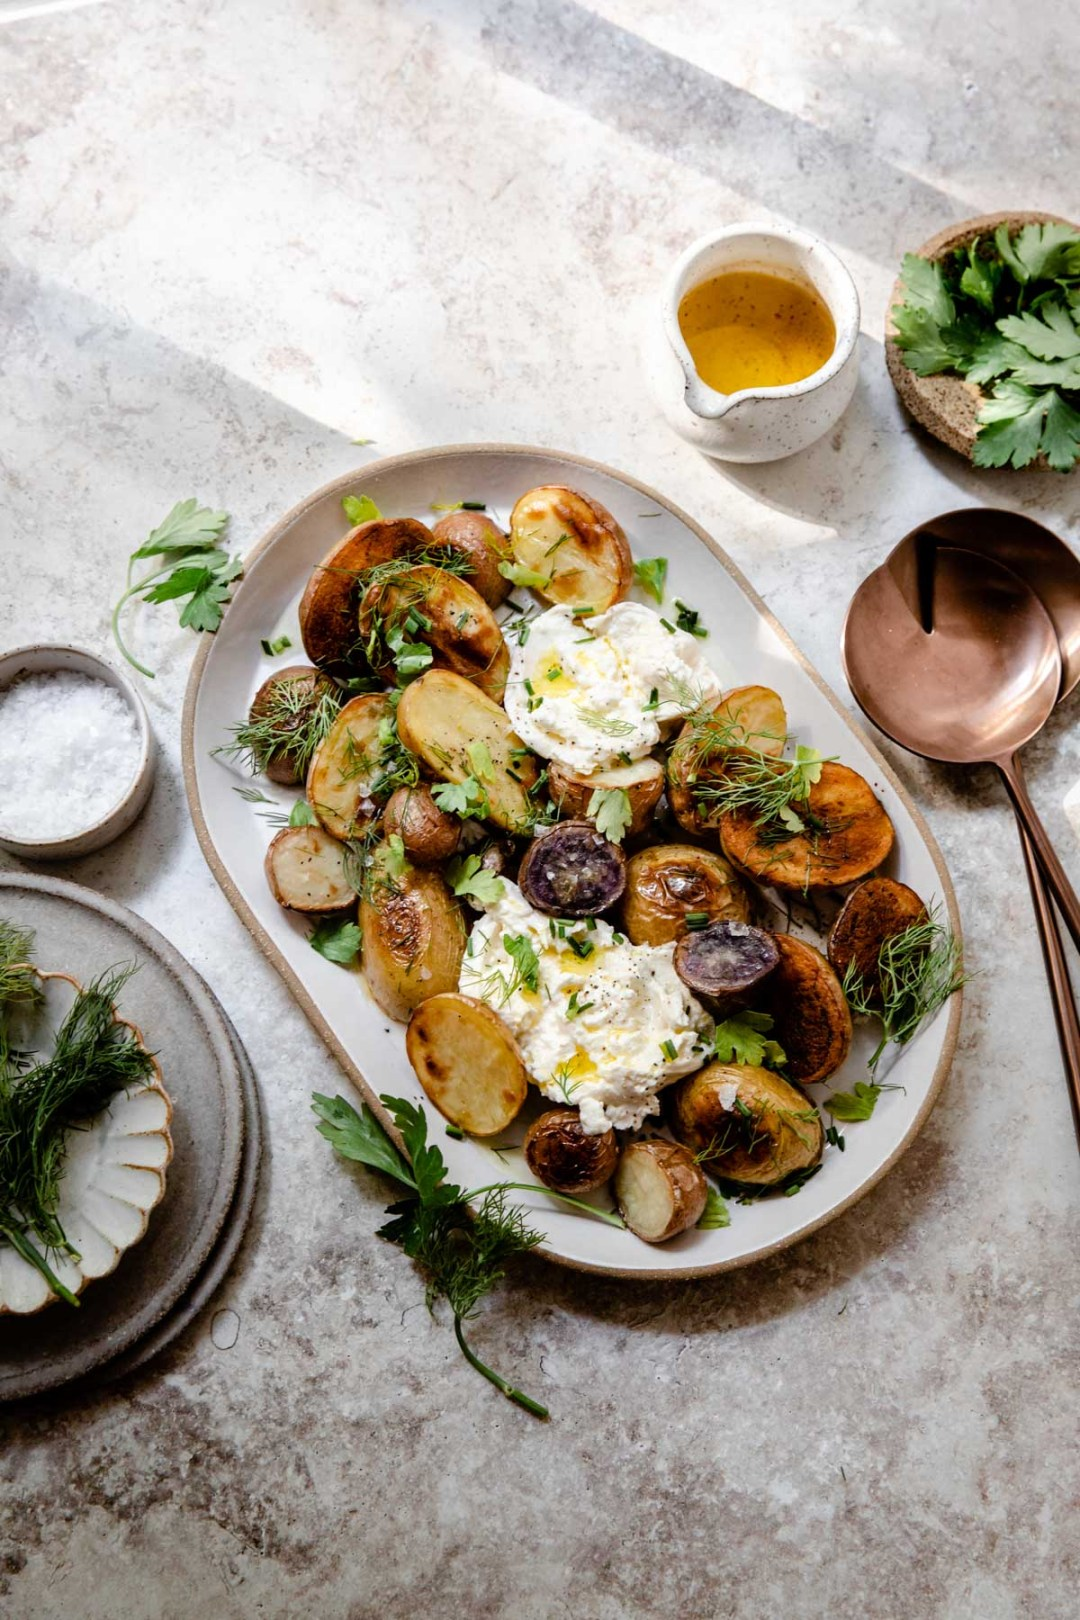 Roasted potatoes with bunches of fresh herbs and creamy burrata make the perfect gluten-free side dish for any weeknight dinner or weekend gathering.